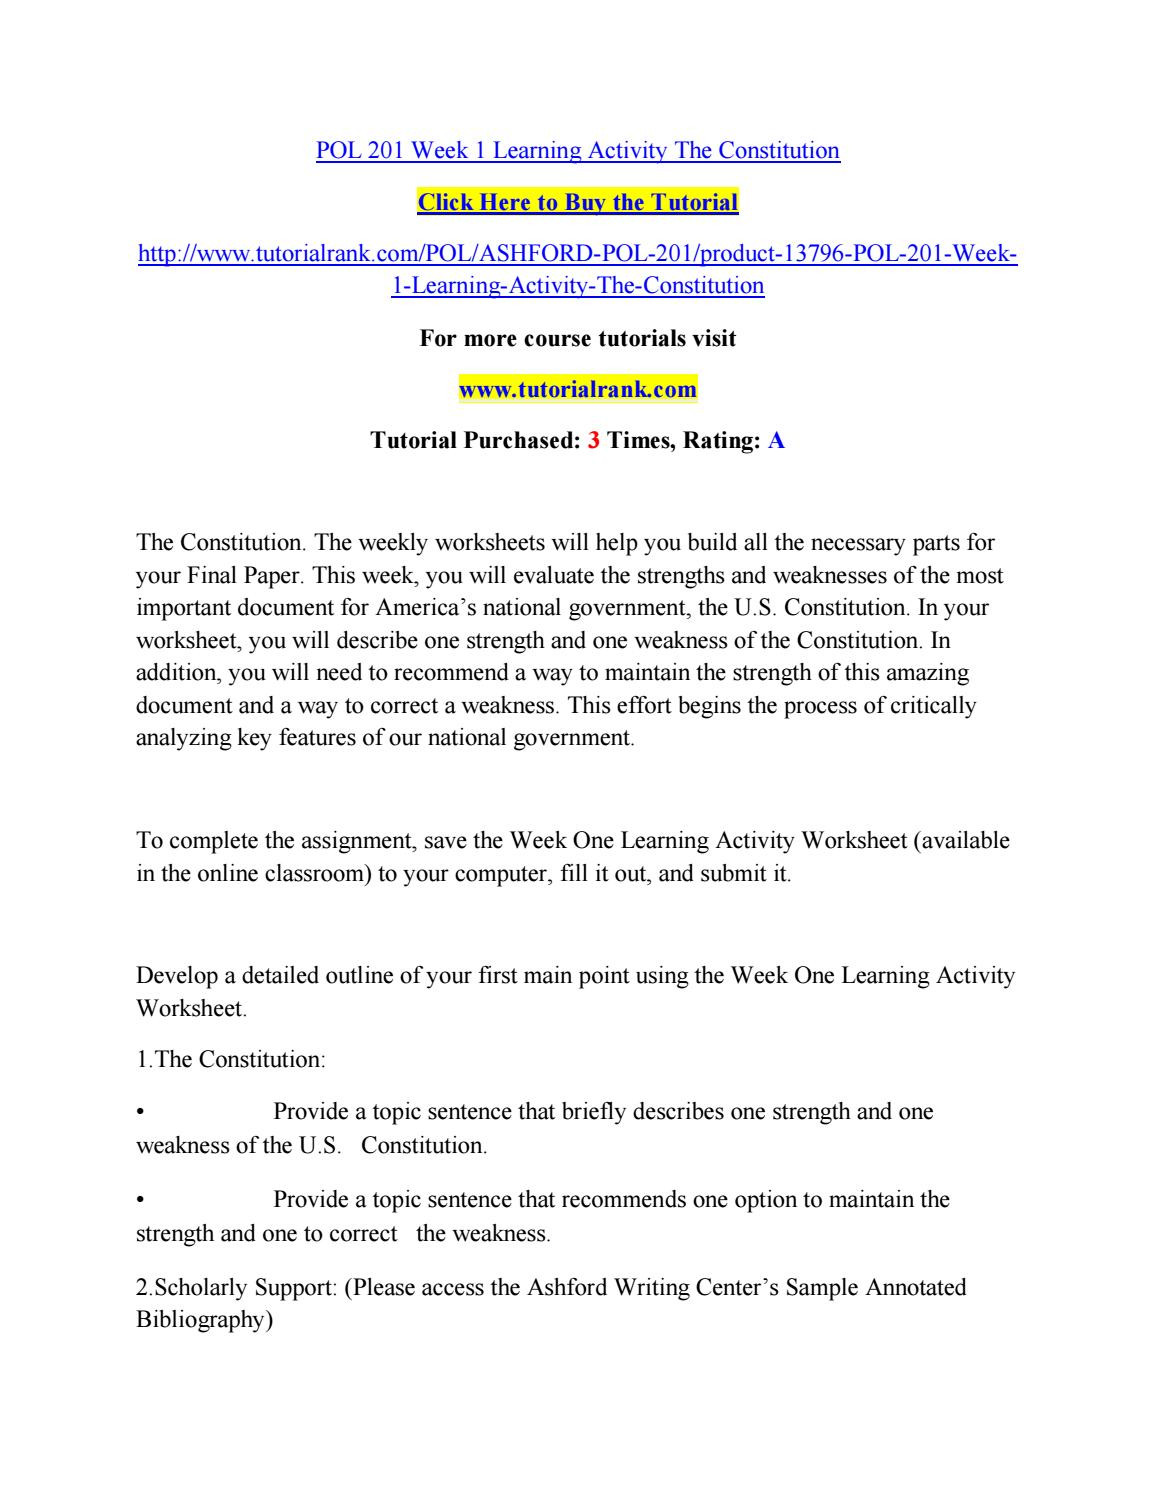 Outline Of the Constitution Worksheet